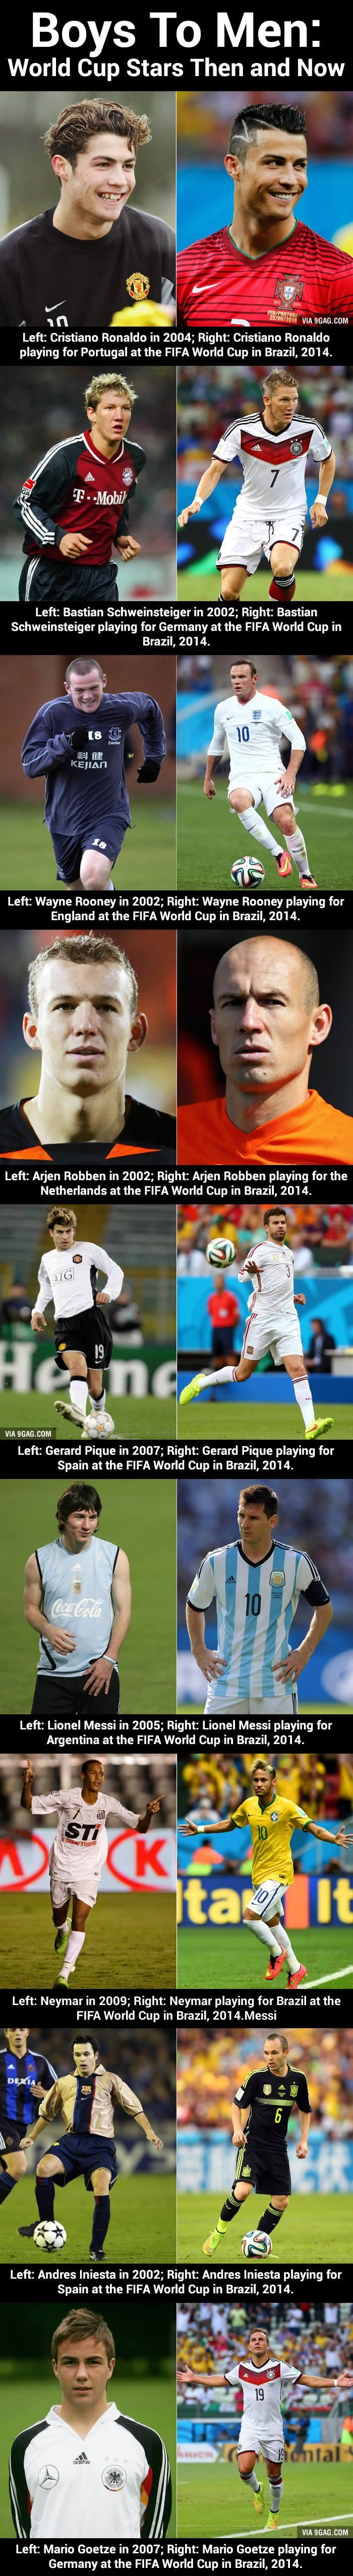 Boys To Men 9 World Cup Stars Then And Now Soccer Memes Soccer Players Soccer World